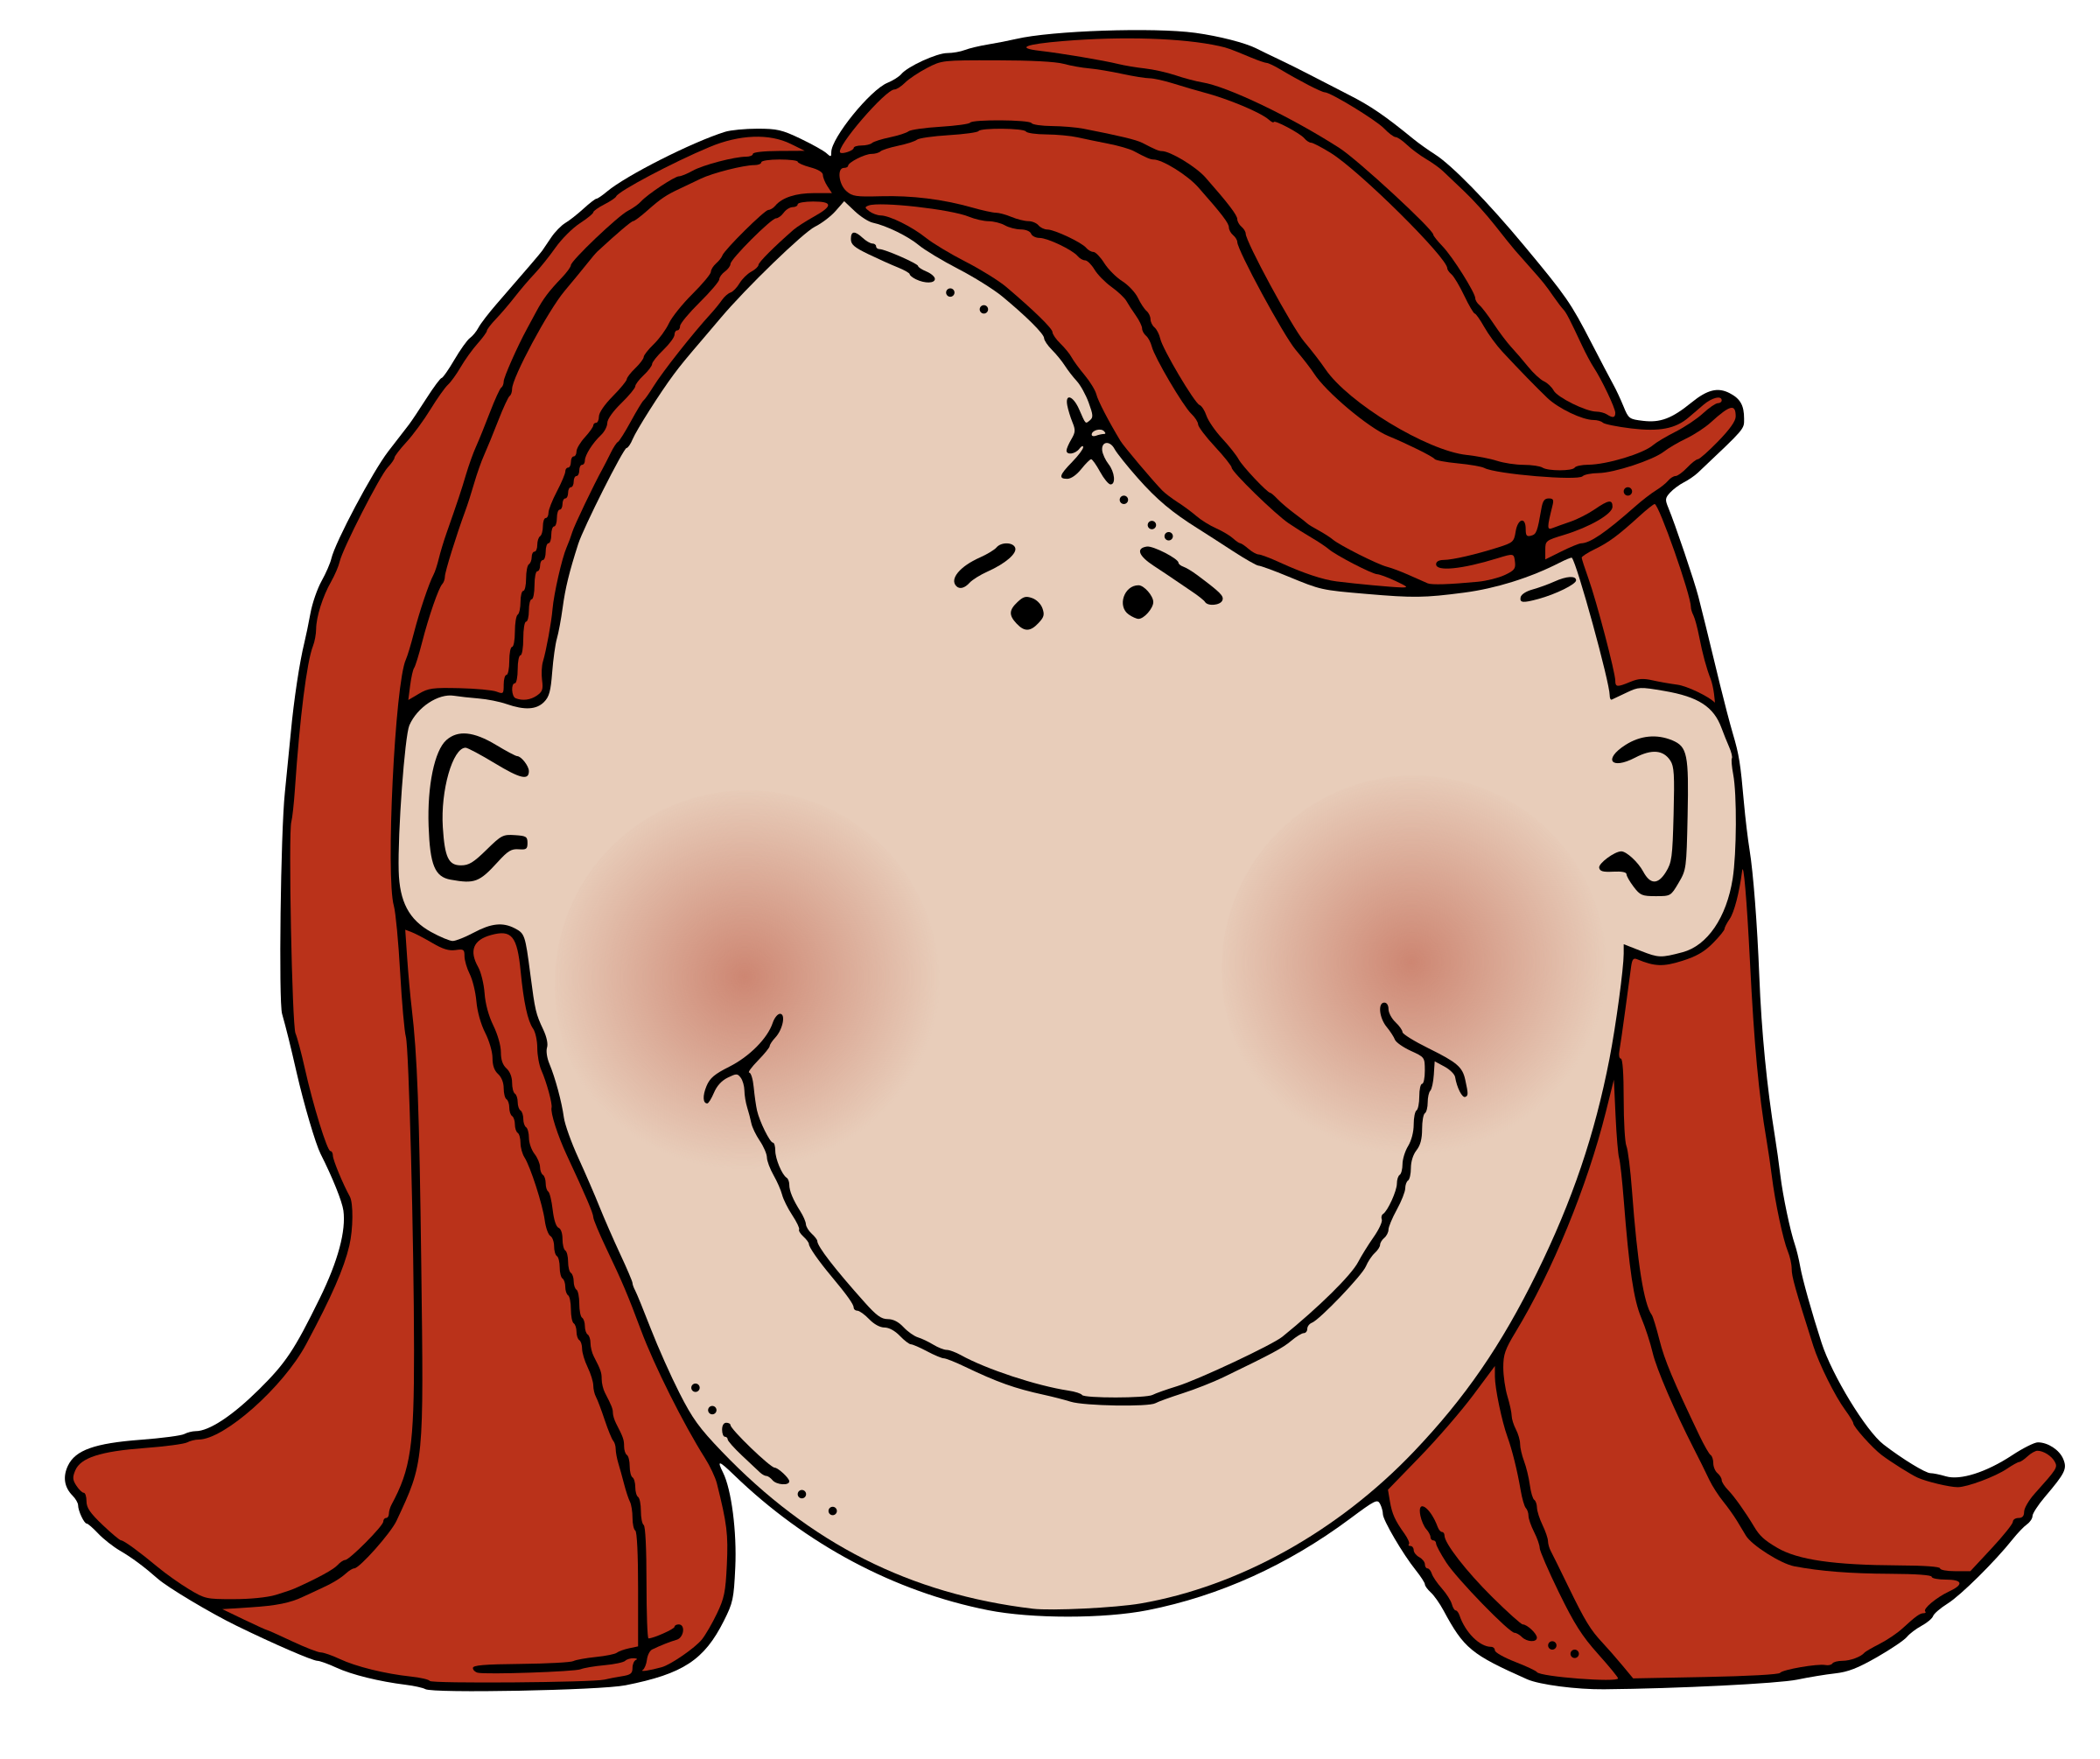 Hair clipart cool hair. Womans face with red